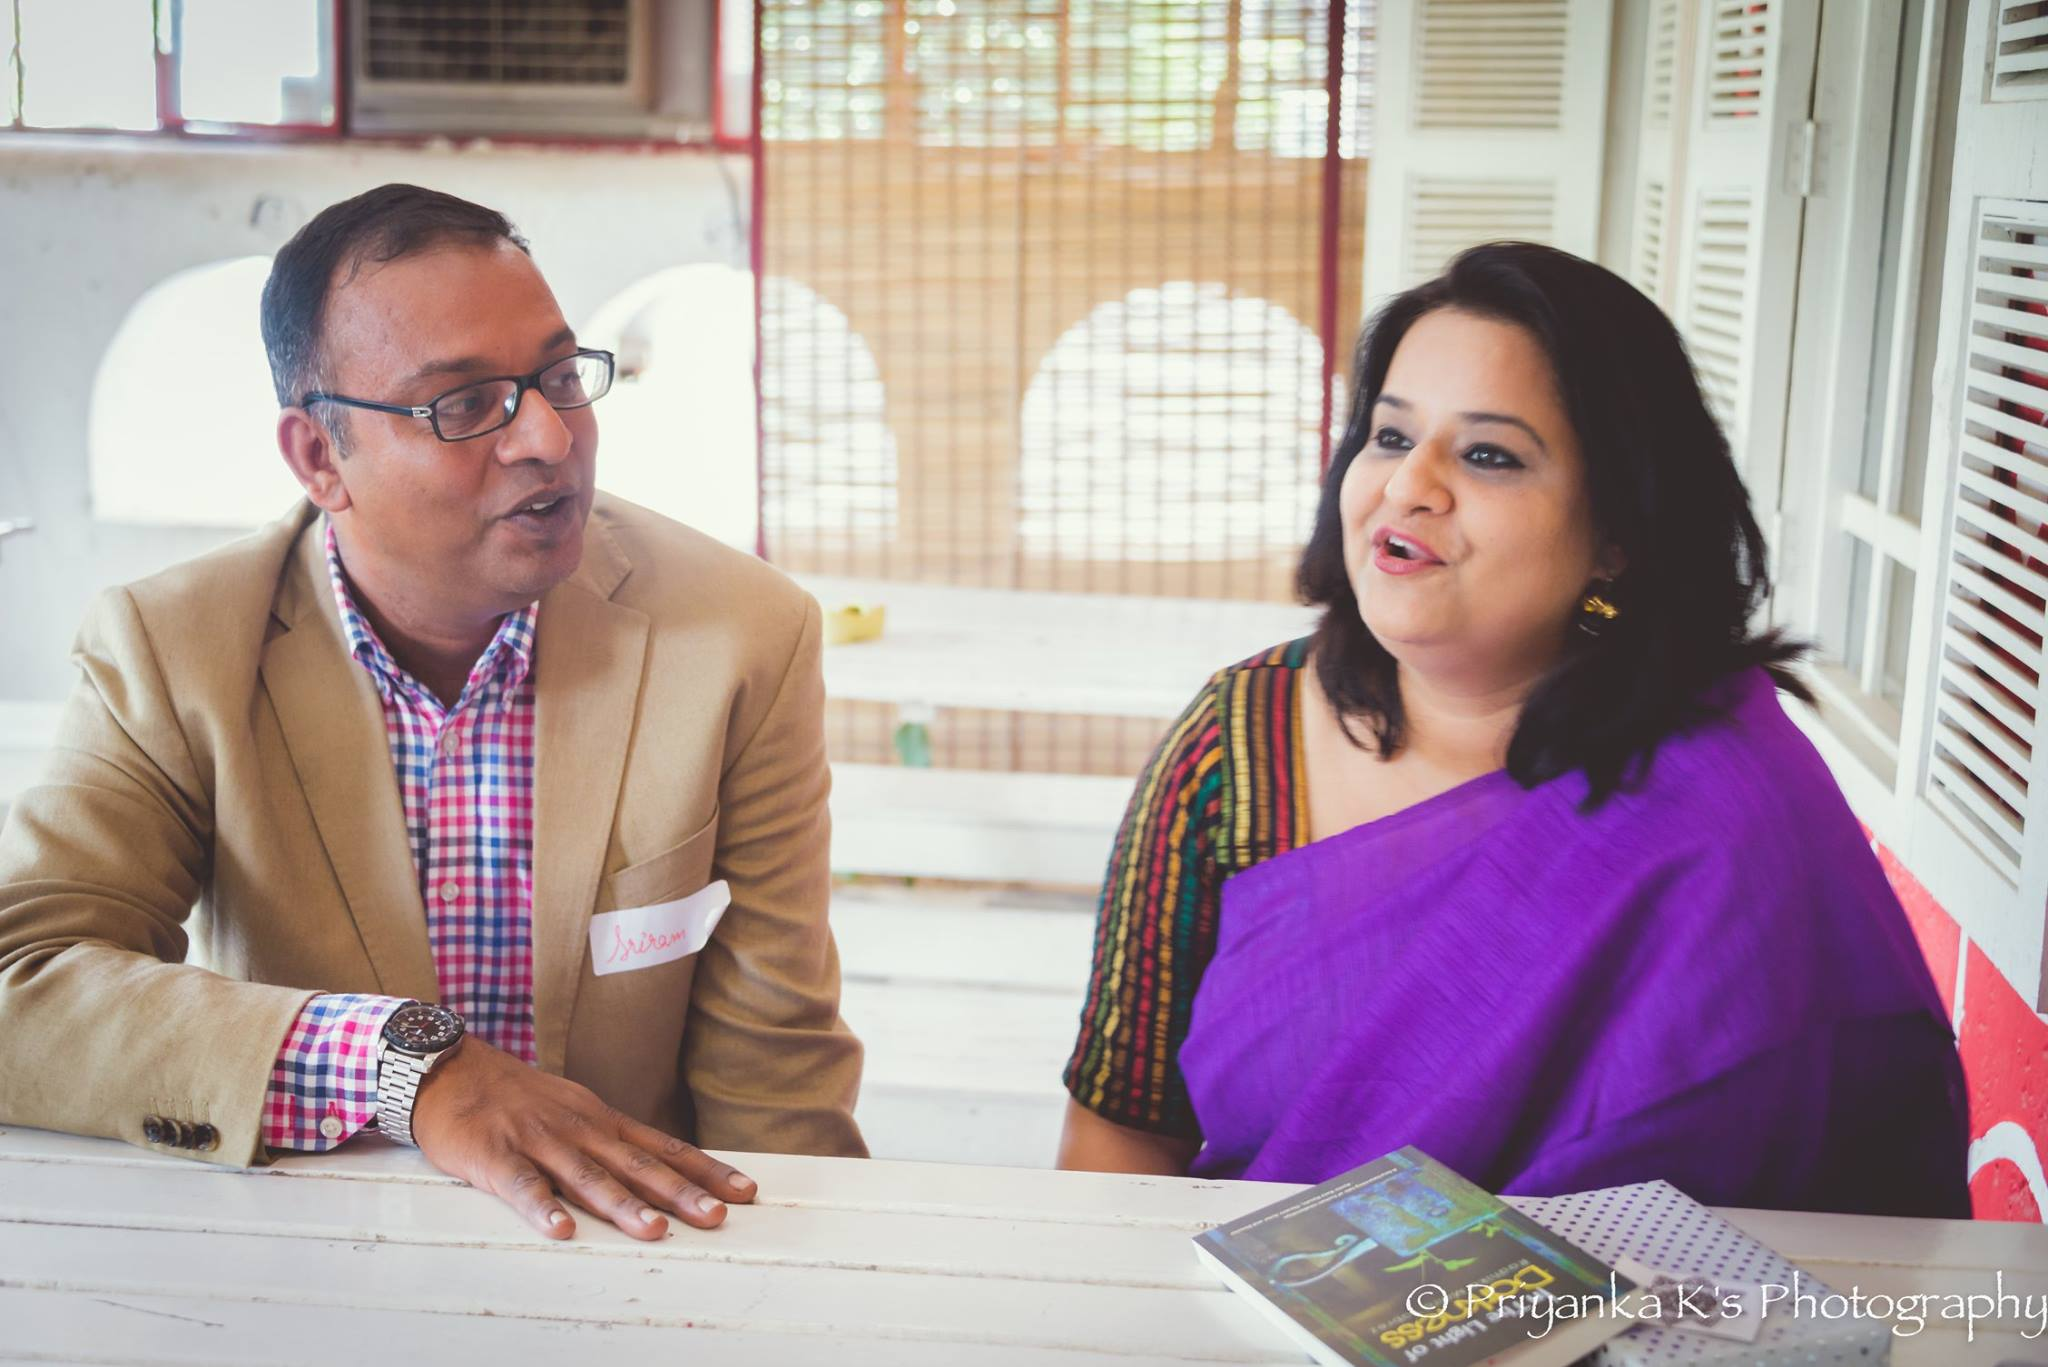 Author Sriram Subramanian's Rain at LitTrio – A GurgaonMoms Book Club Event